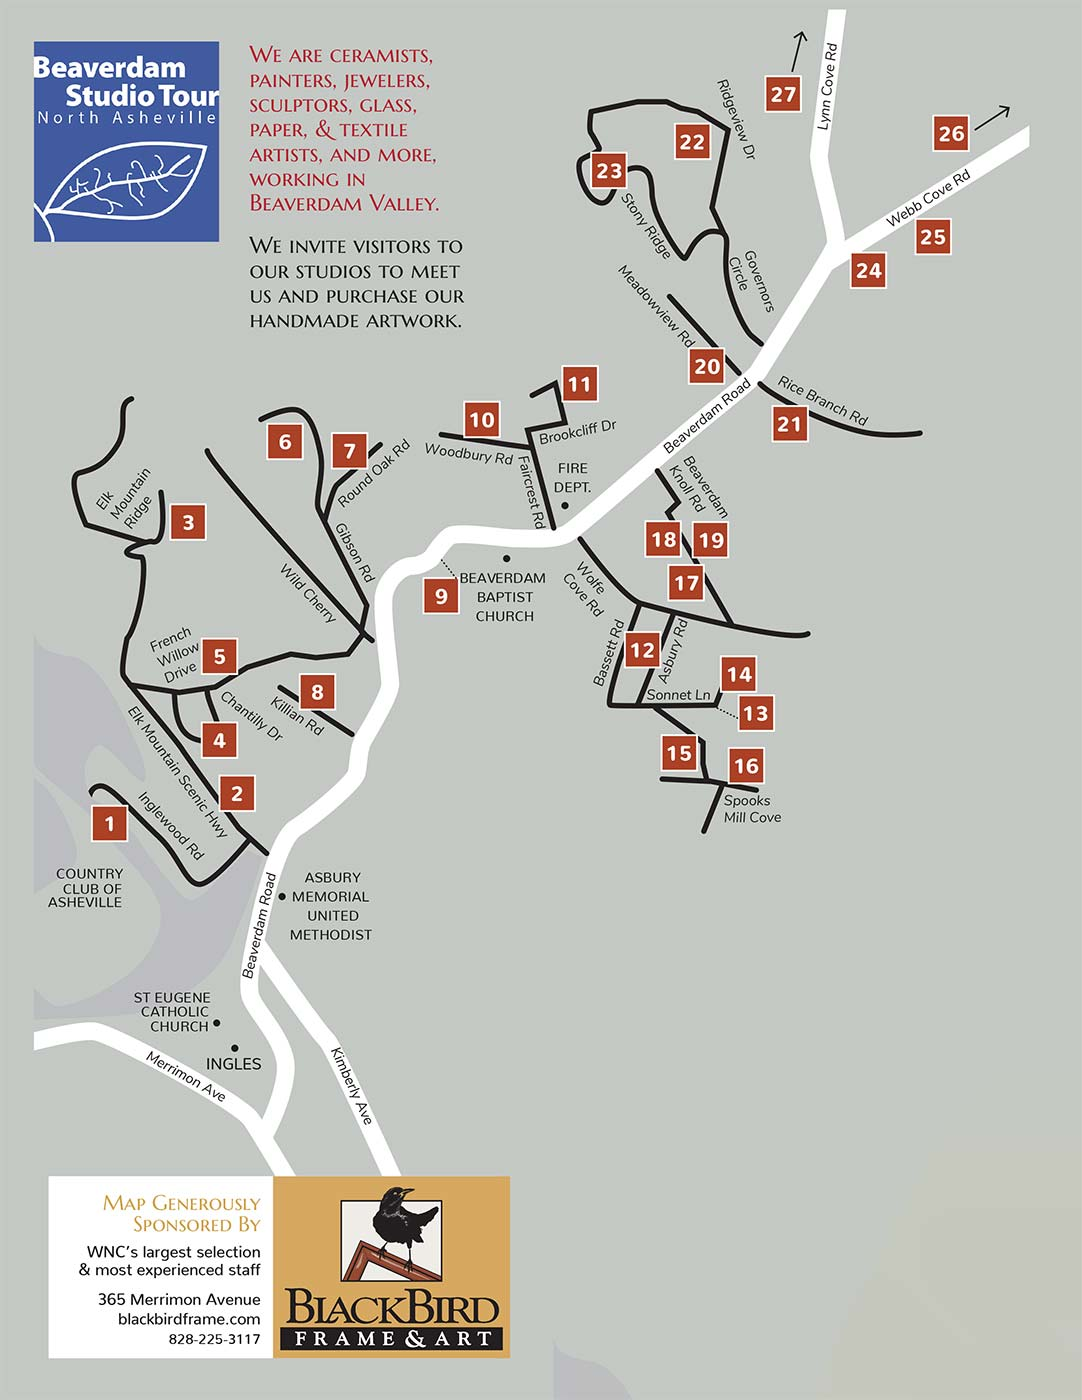 Beaverdam Studio Tour Map